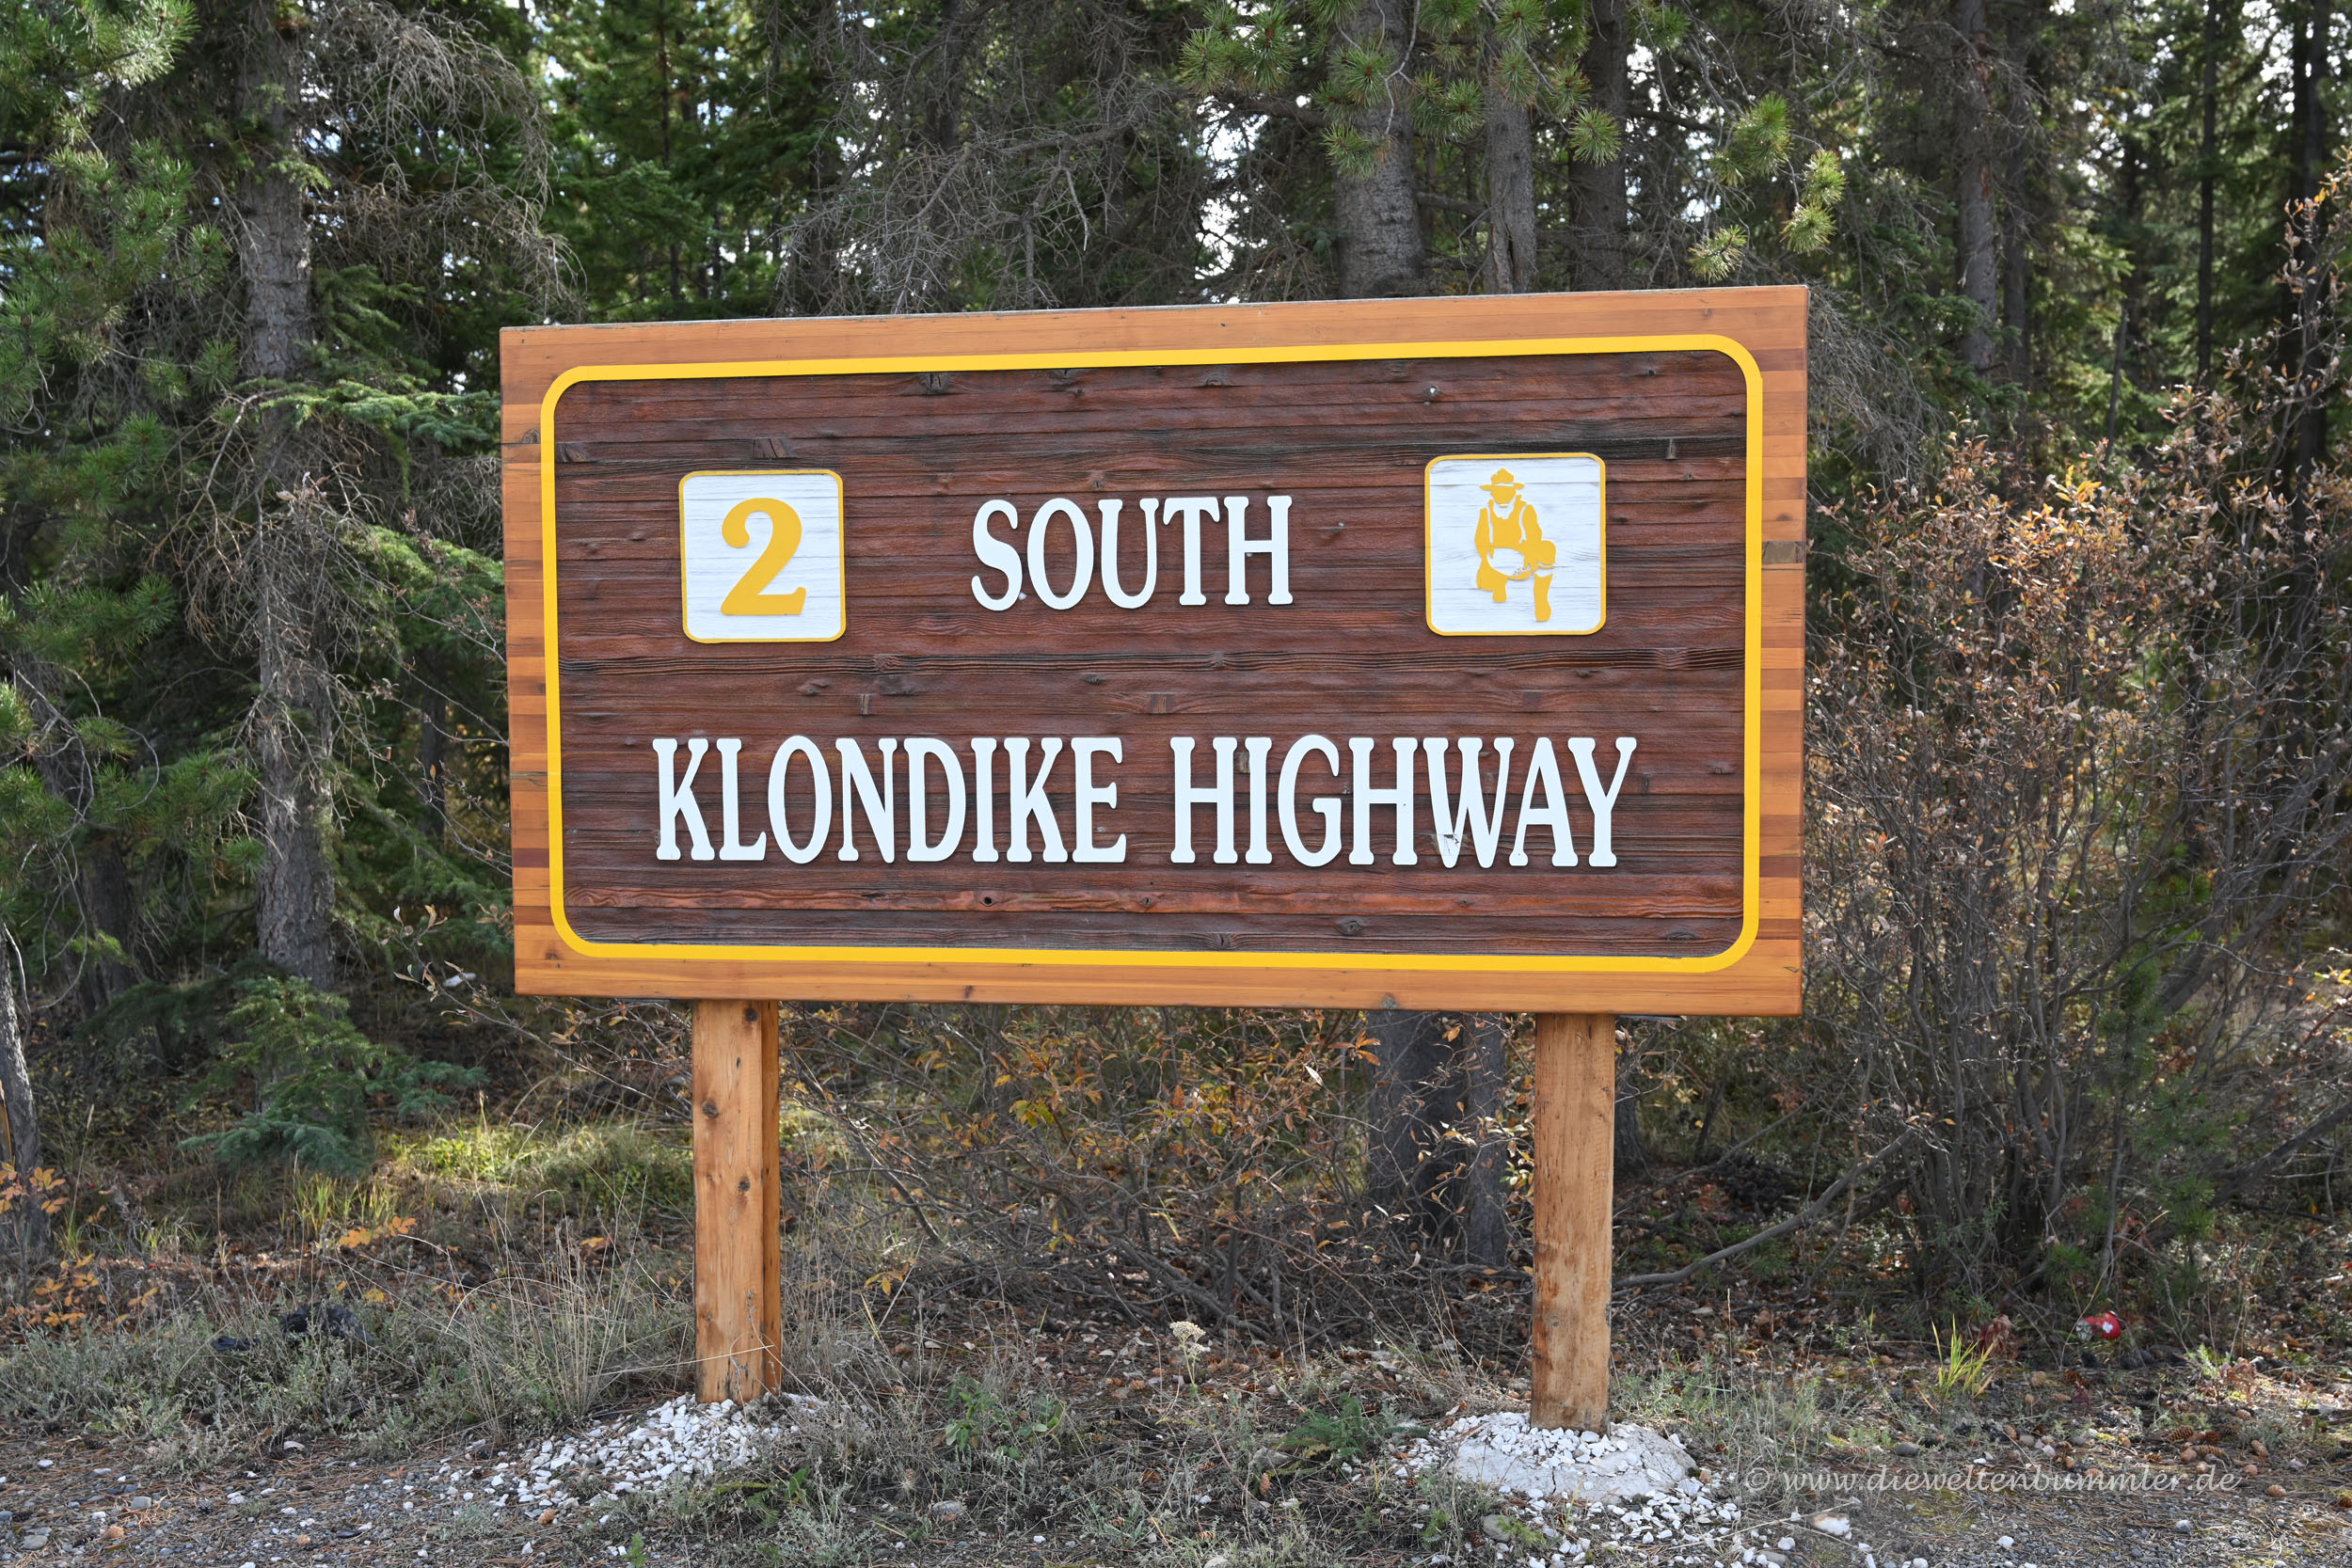 South Klondike Highway